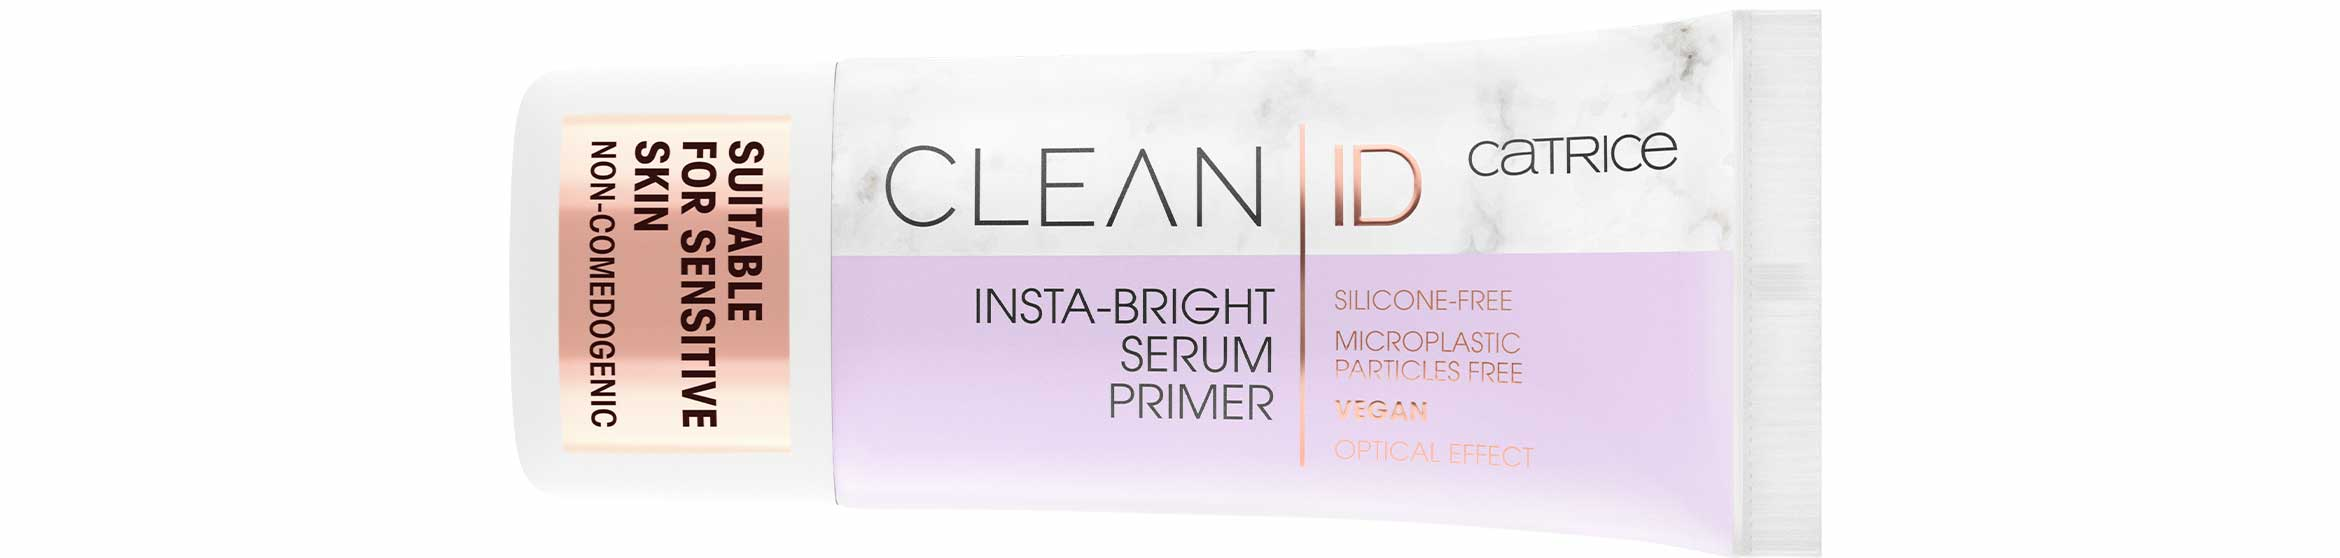 catrice clean id insta-bright serum primer